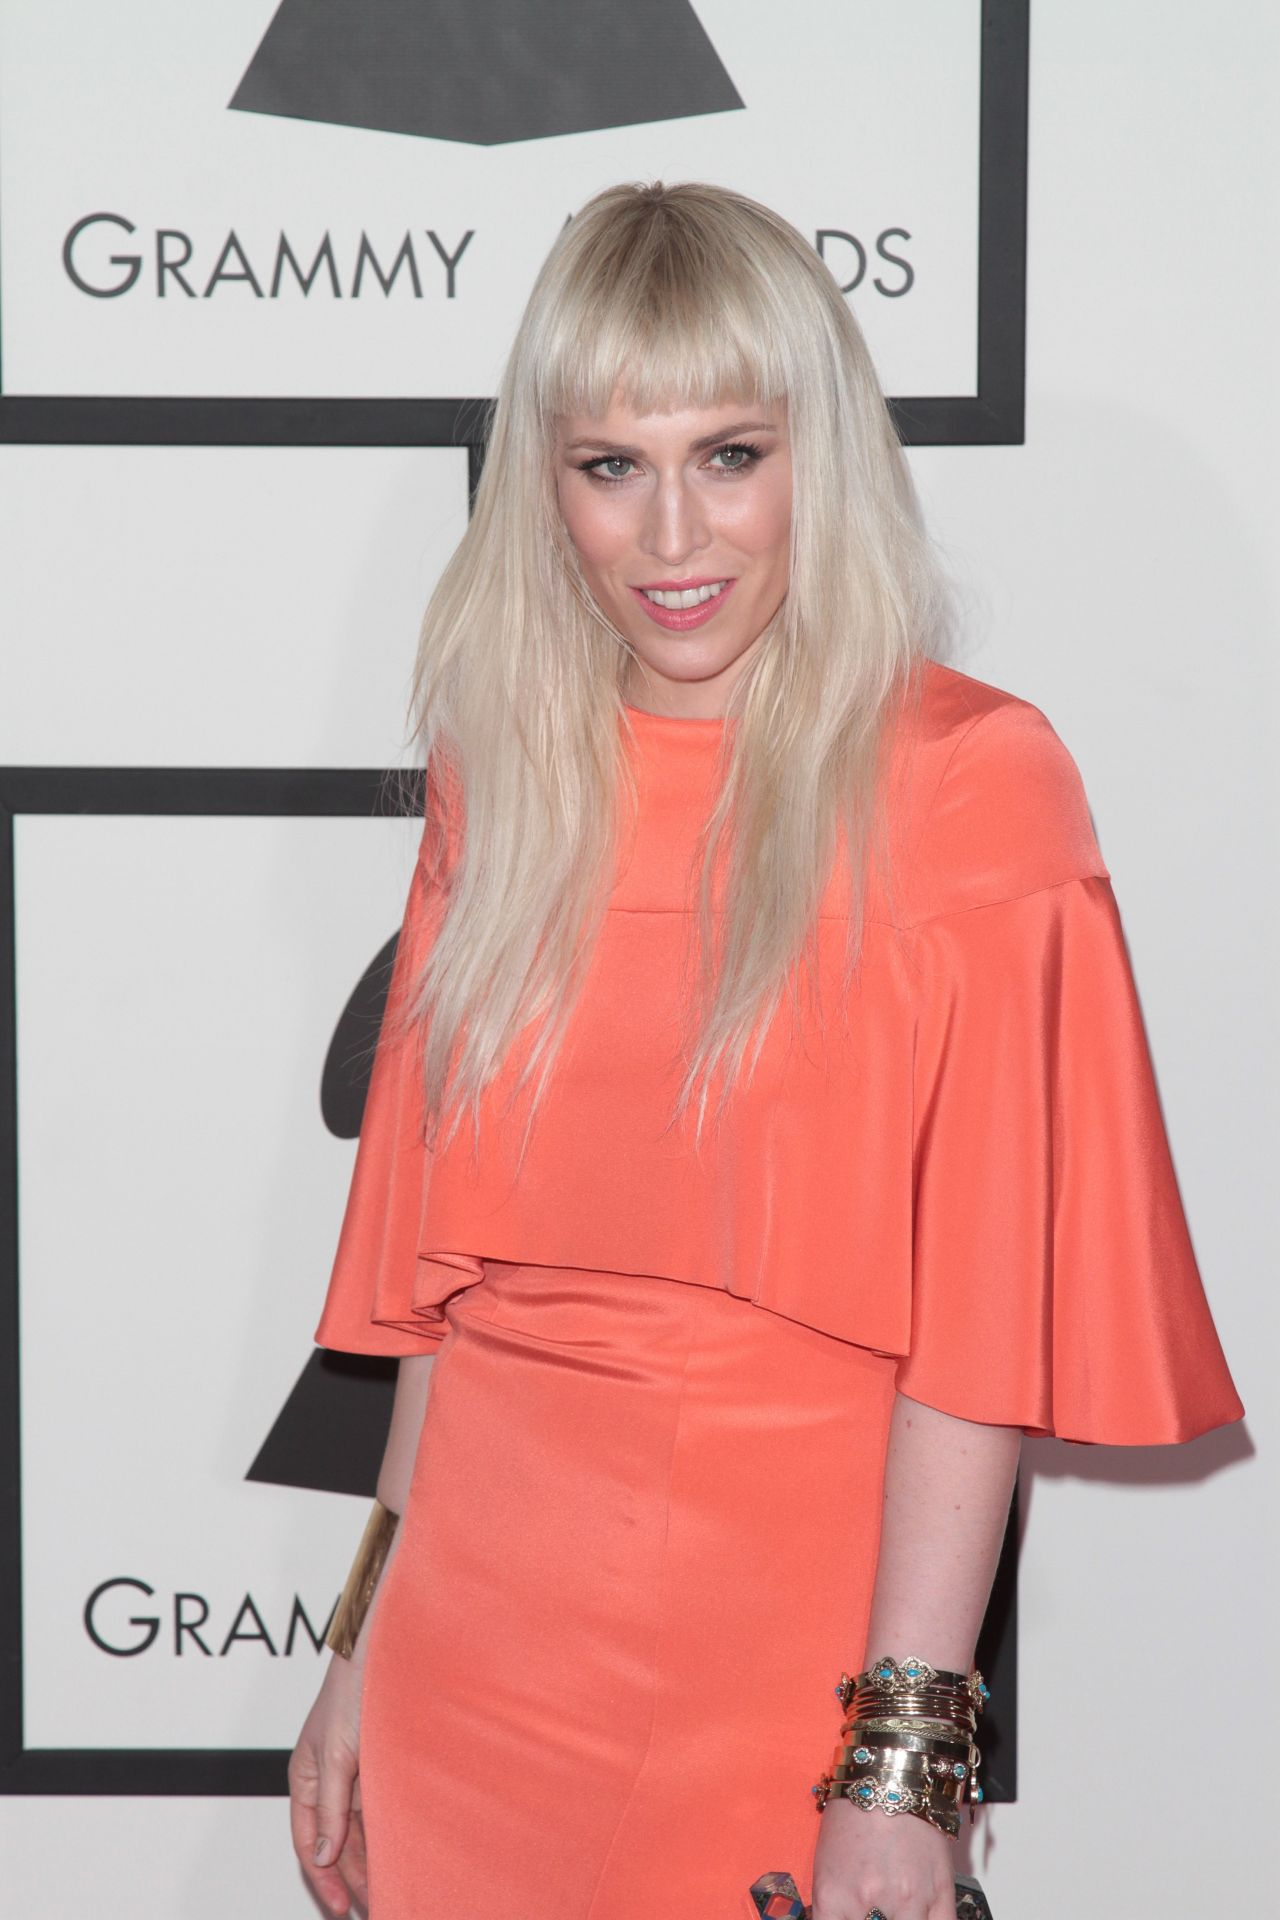 Natasha Bedingfield - 2014 Grammy Awards Red Carpet